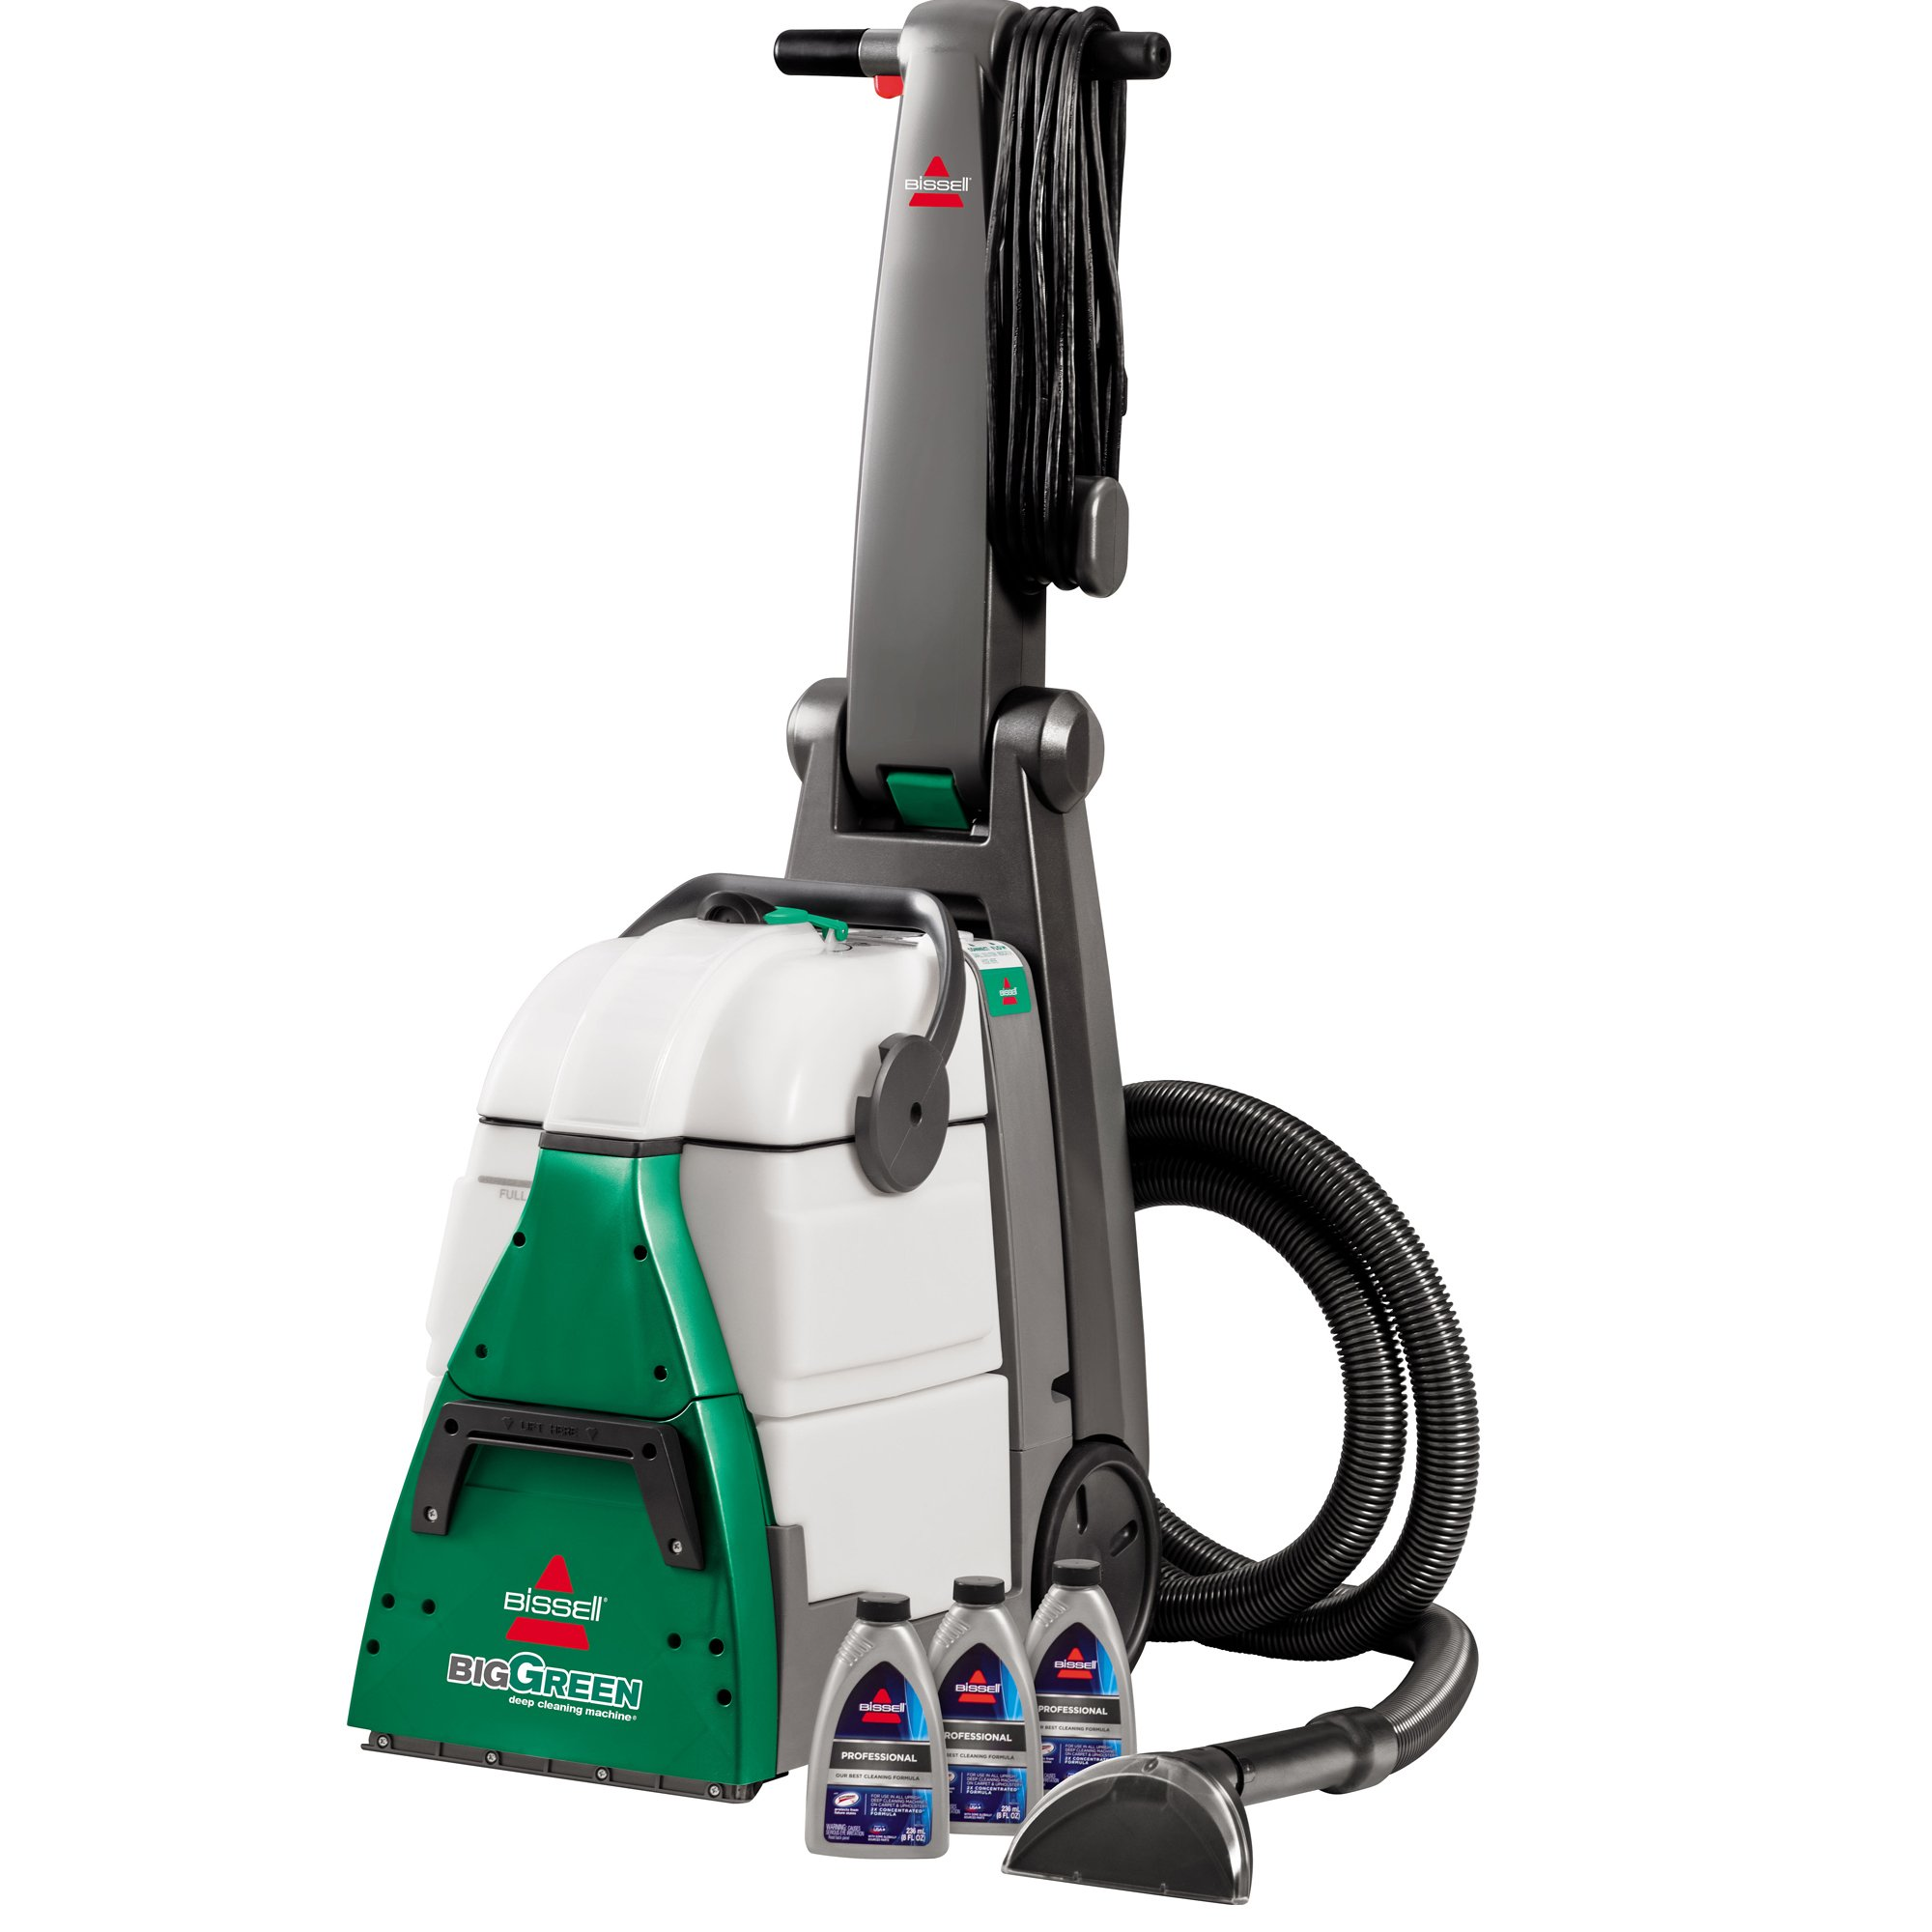 Bissell Big Green Professional Carpet Cleaner Machine, 86T3 by Bissell